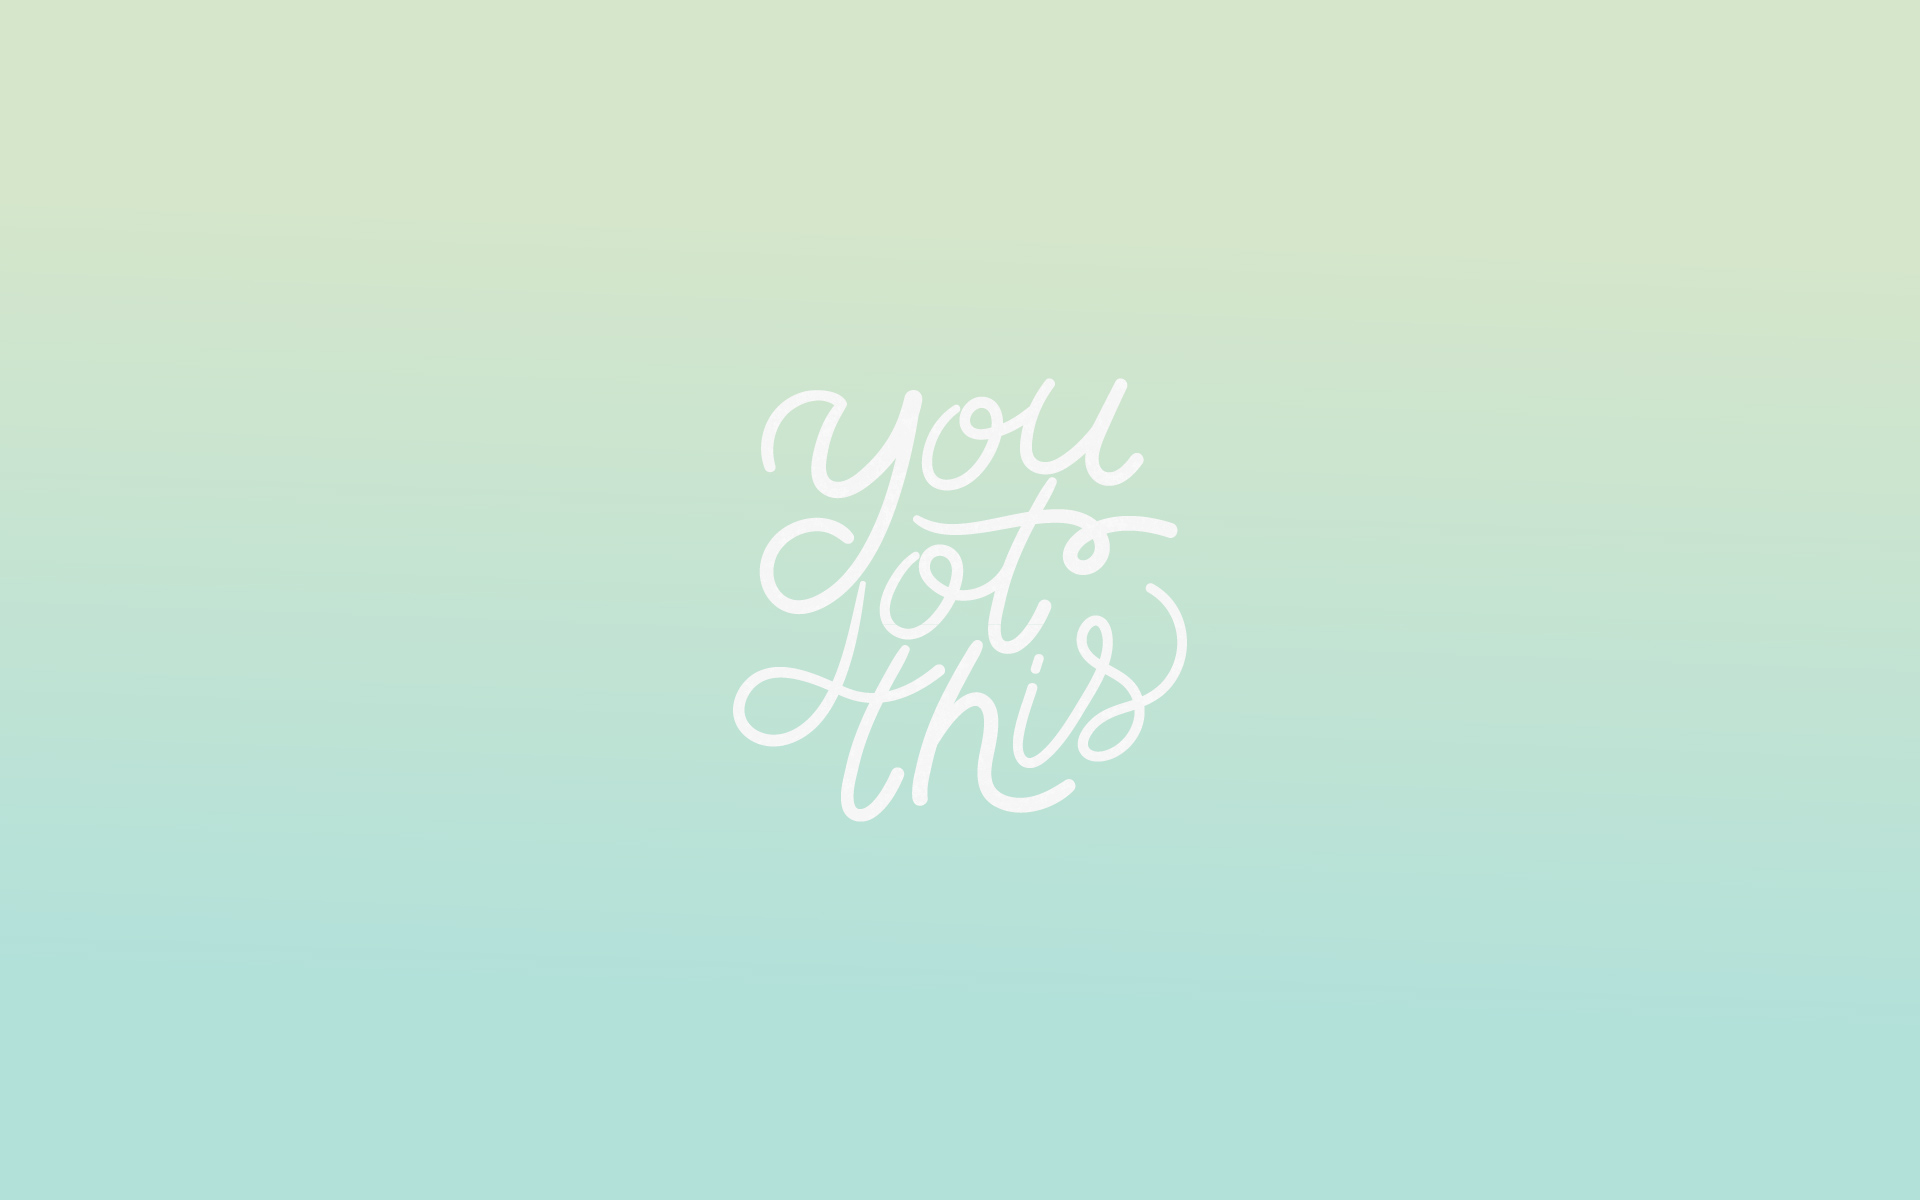 Gold And Teal Wallpaper Quote Fuze Branding You Got This Free Motivational Wallpaper